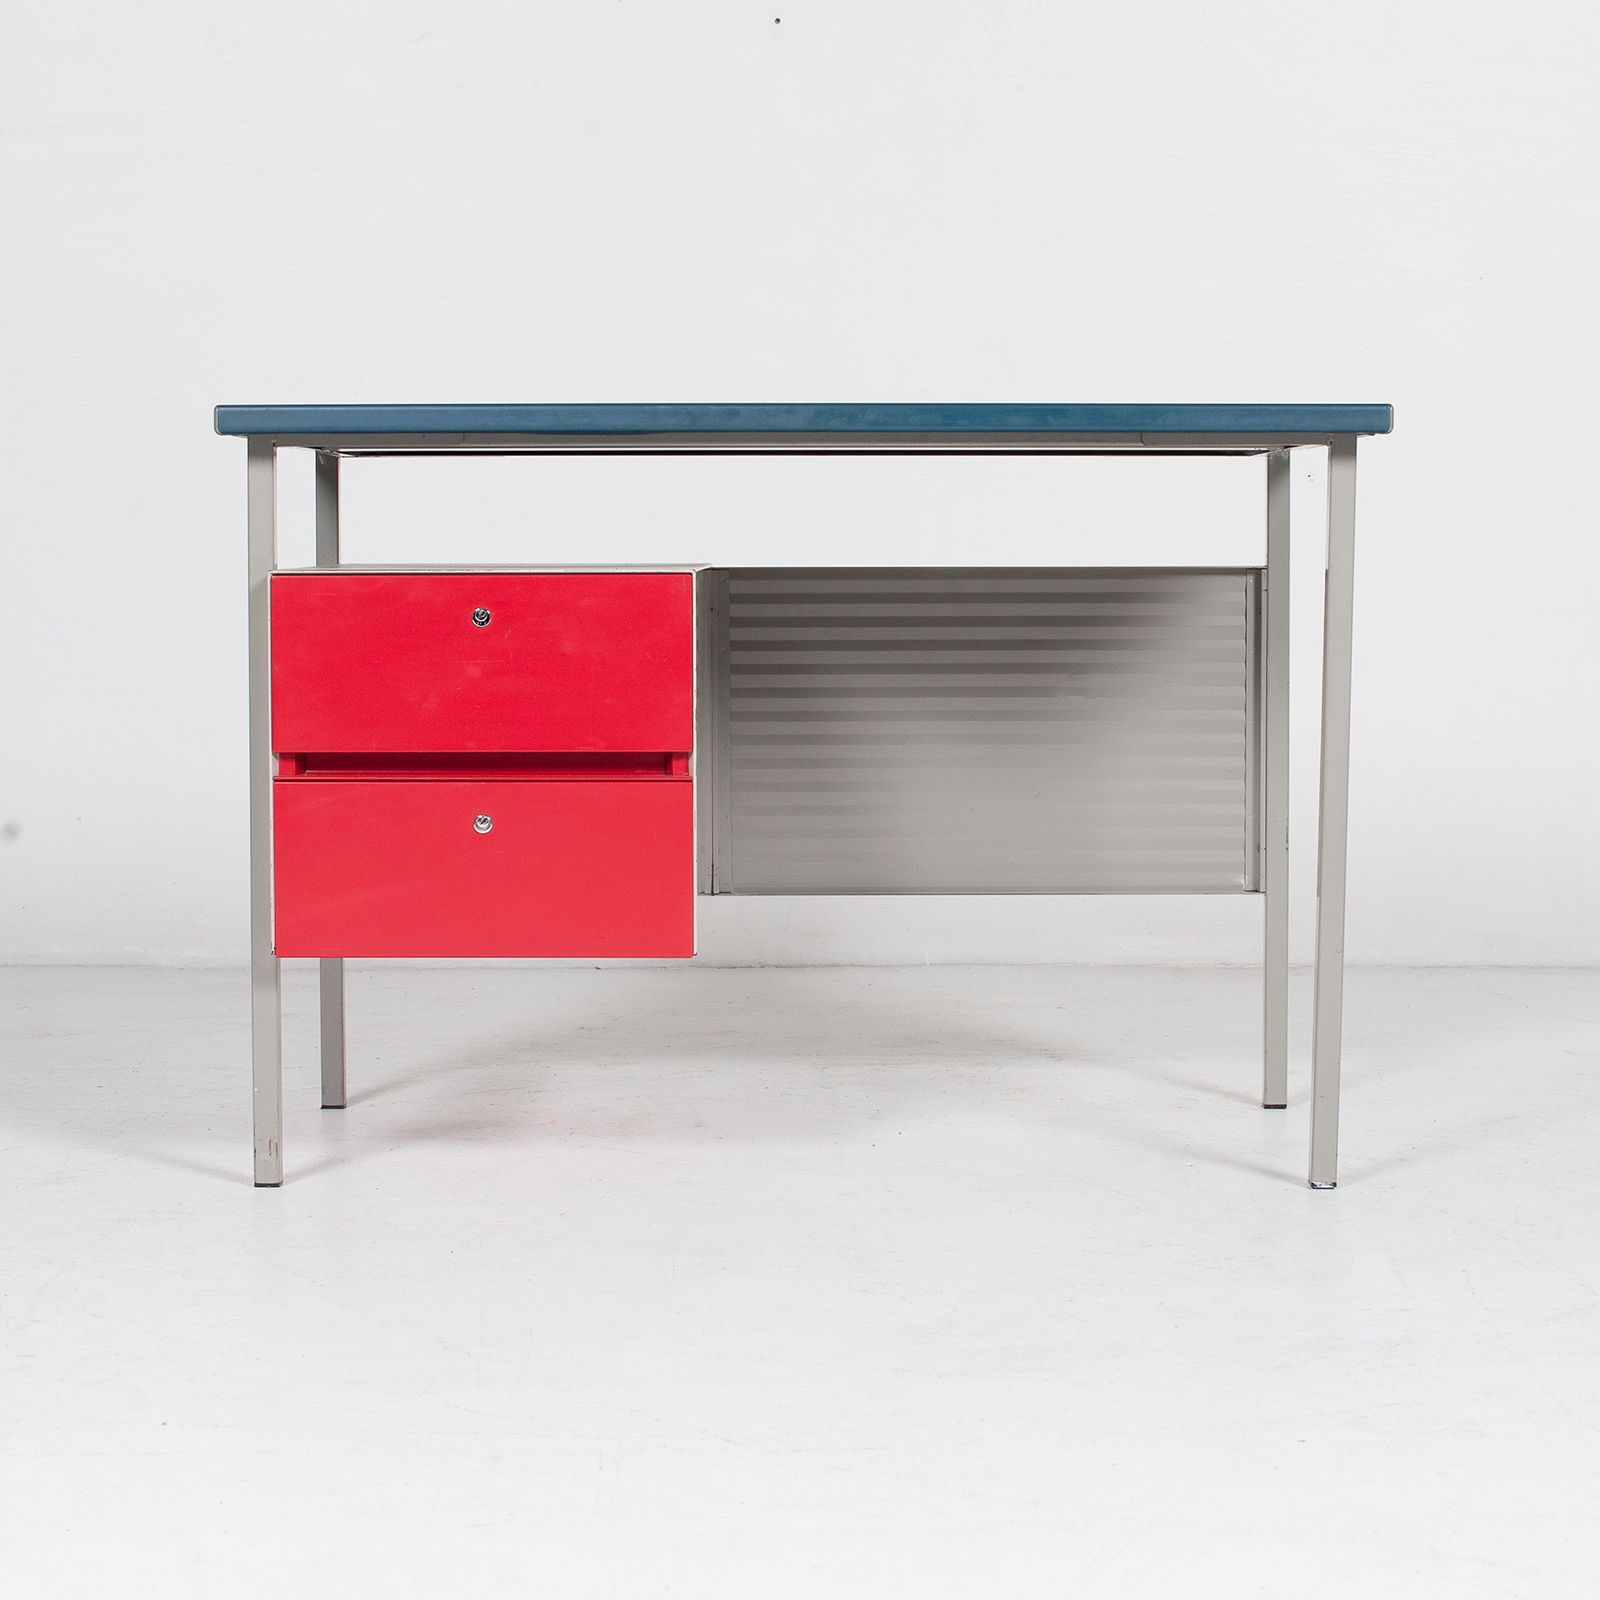 3803 Industrial Desk By Andre Cordemeyer For Gispen With Blue Vinyl Top And Red Enamelled Drawers, 1950s, The Netherlands 44